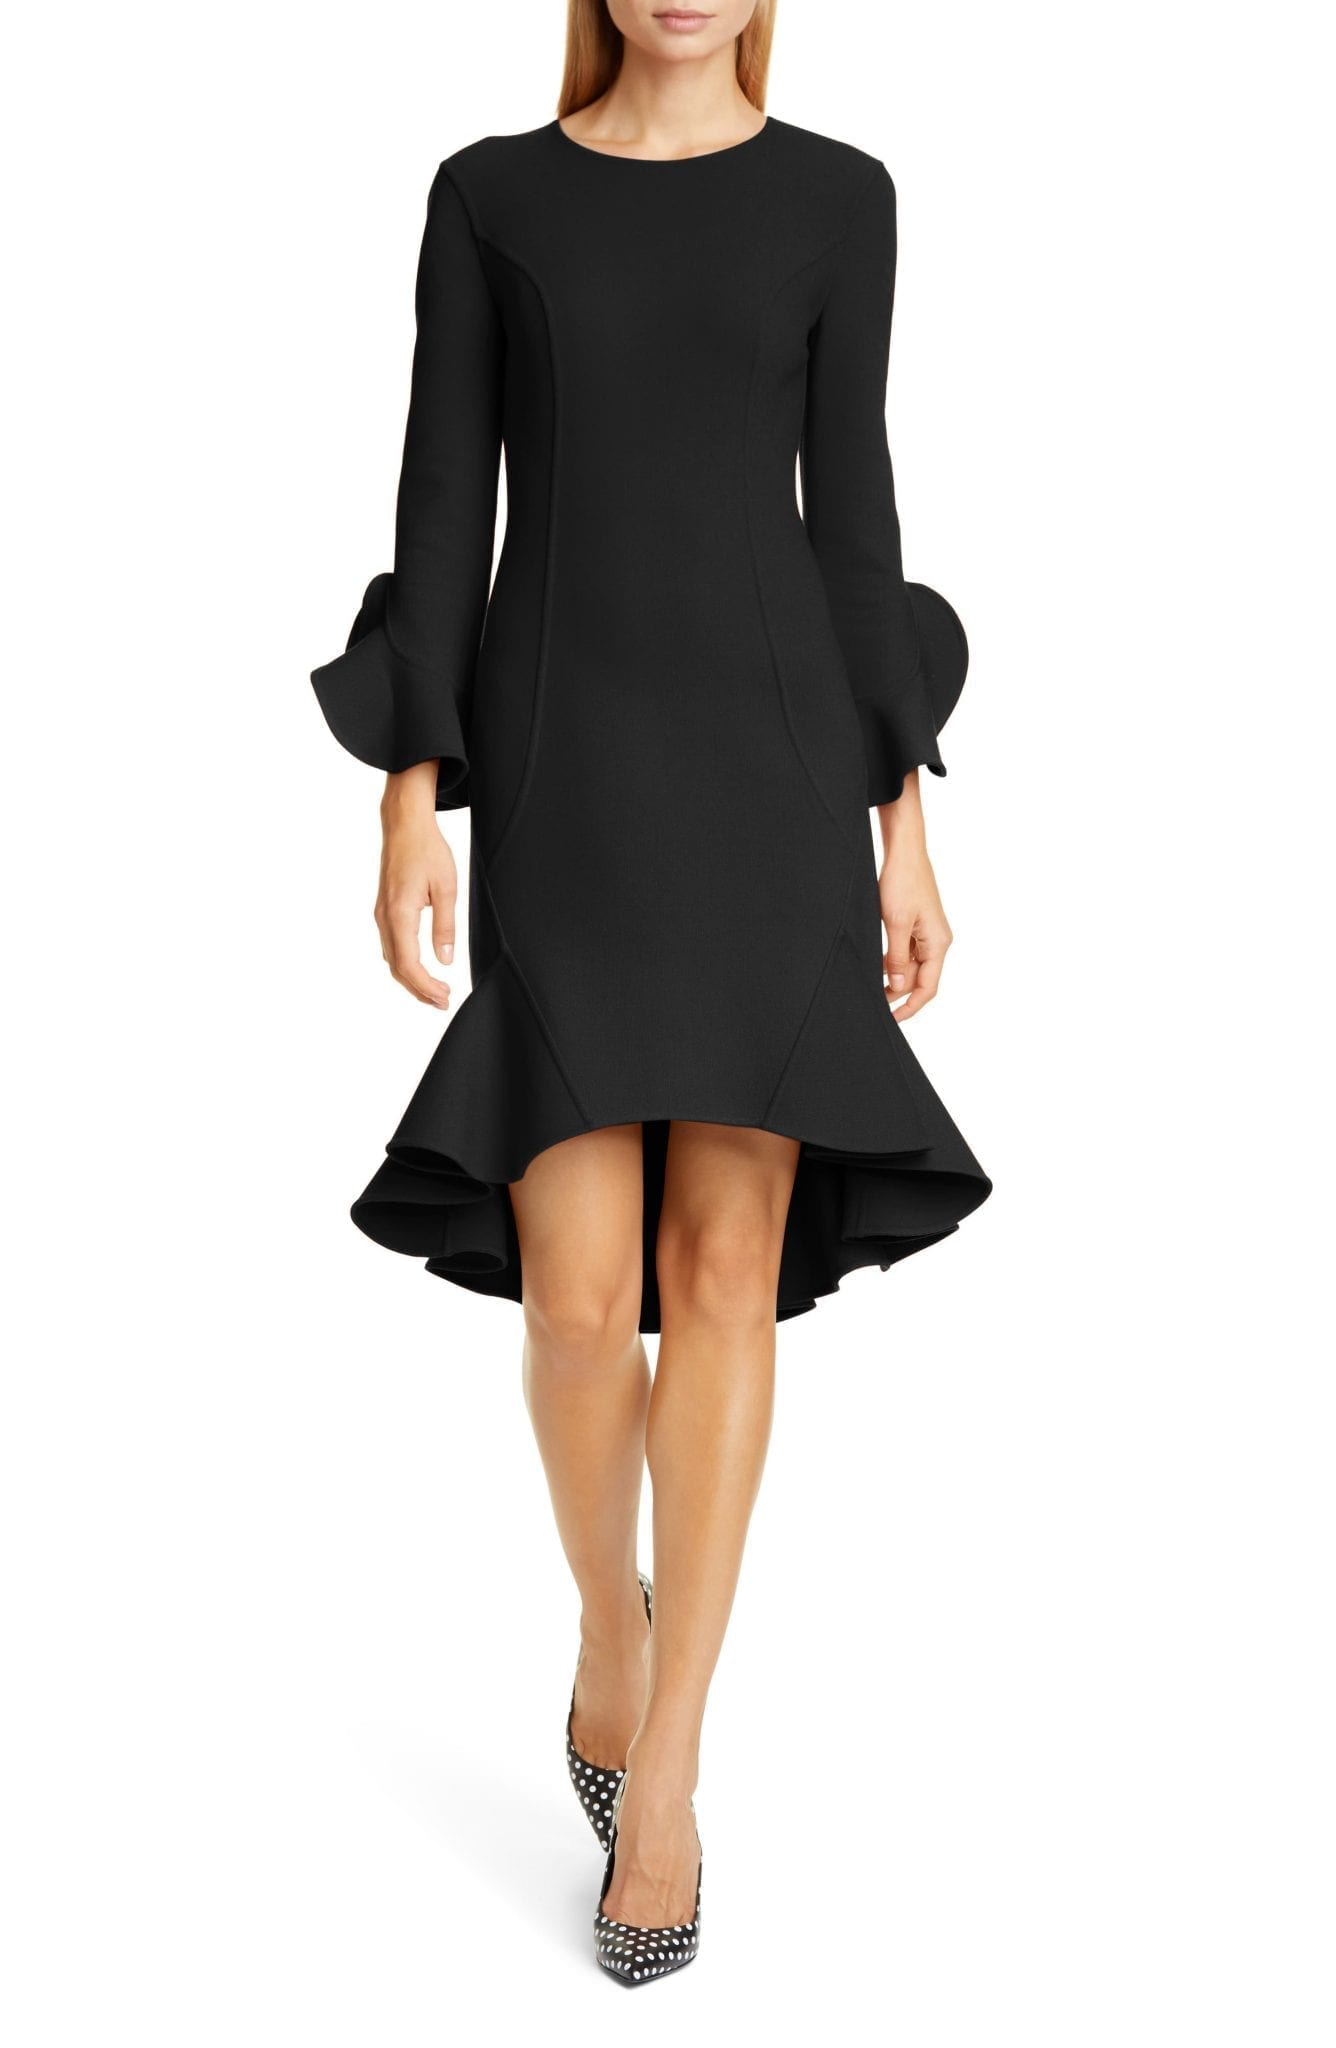 MICHAEL KORS COLLECTION Flounce Sleeve Sheath Dress